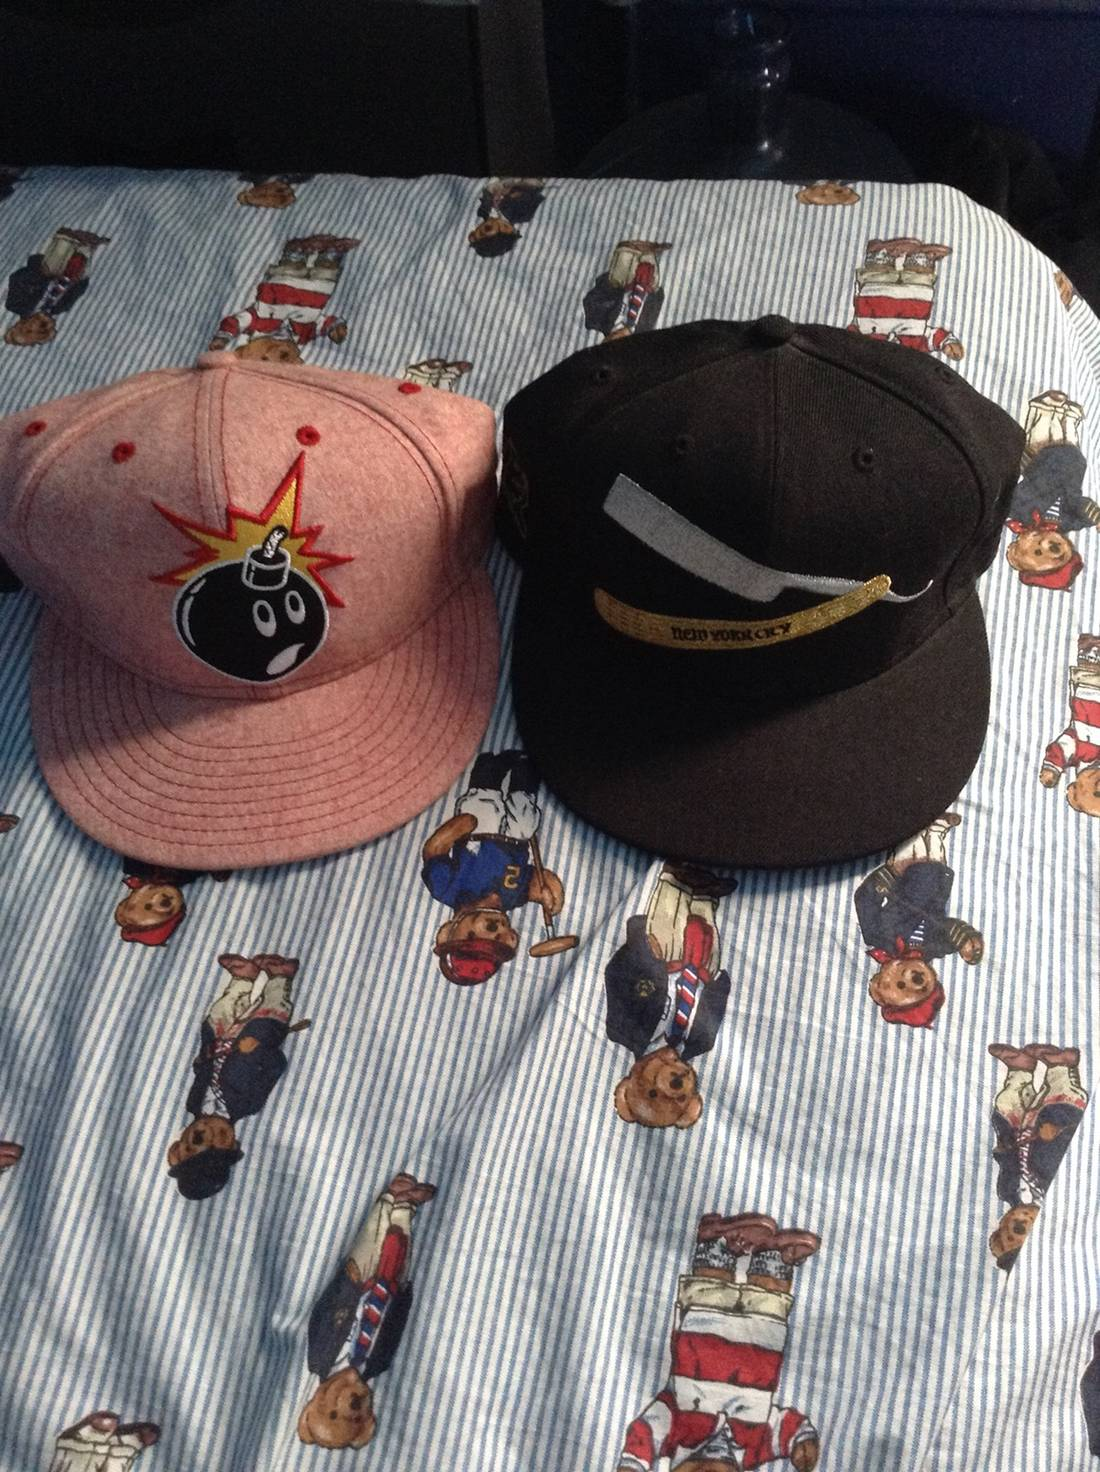 73a00ae7a98 ... x bxr hat size 7 1c3d3 11428  reduced the hundreds rare new era the  hundreds franks chop shop fitted hats sz 7 1